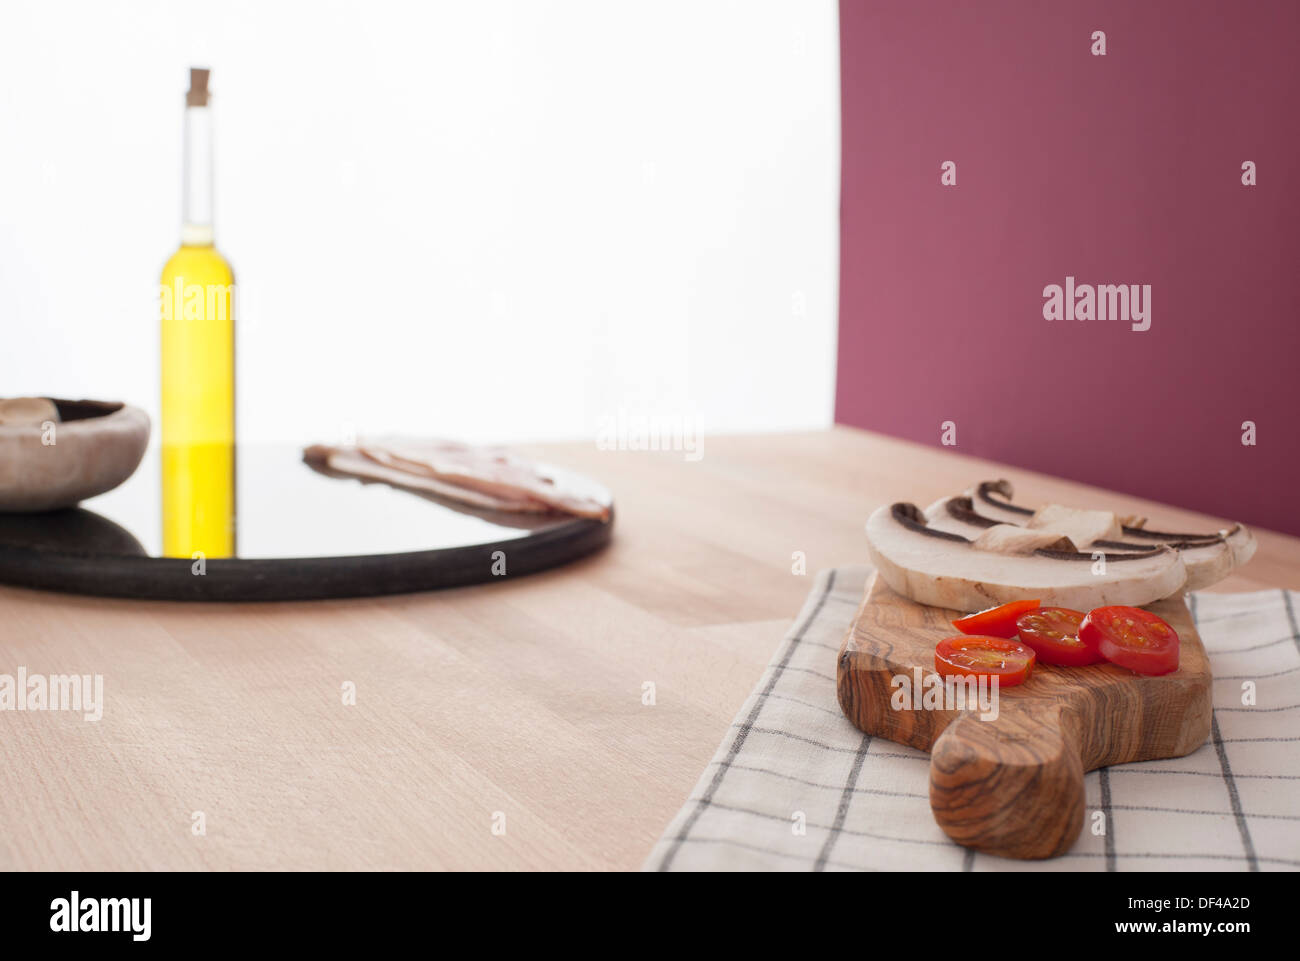 food preparation being carried out in a kitchen showing sliced mushrooms and tomatoes laying on a olive wood cutting board - Stock Image